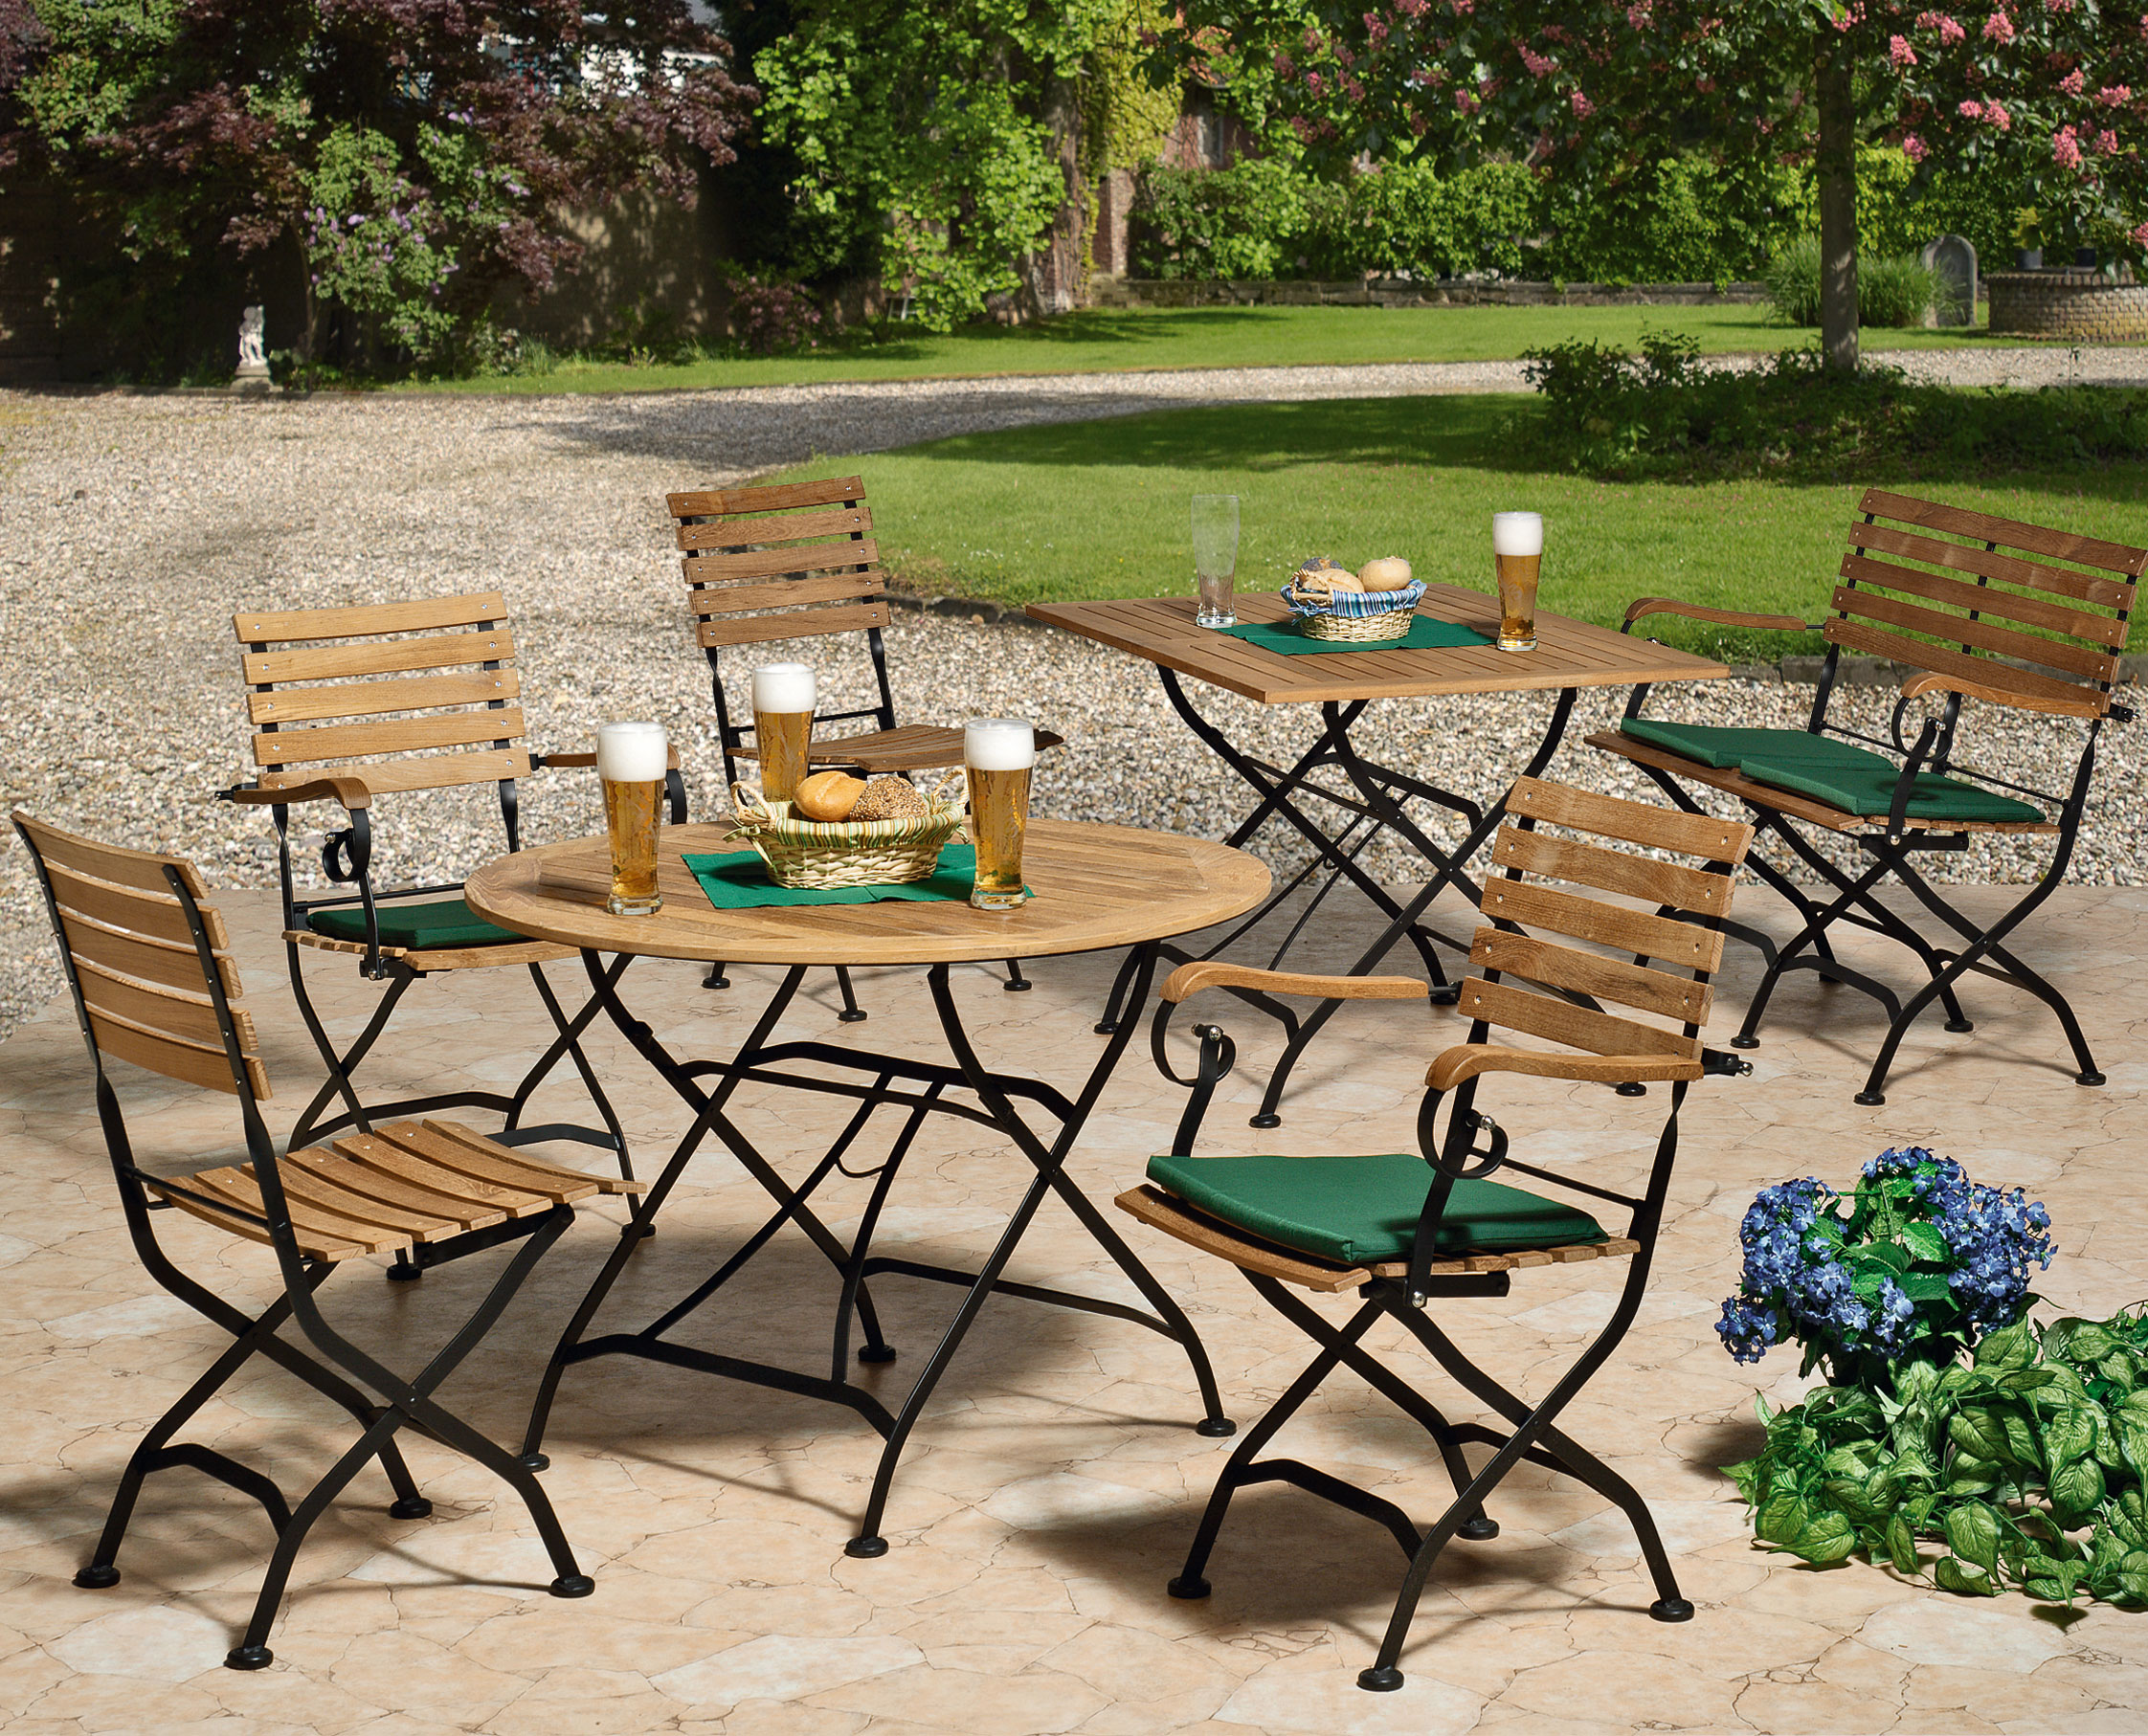 gartenstuhl biergartenstuhl klappbar peru ii teakholz stahl bei. Black Bedroom Furniture Sets. Home Design Ideas